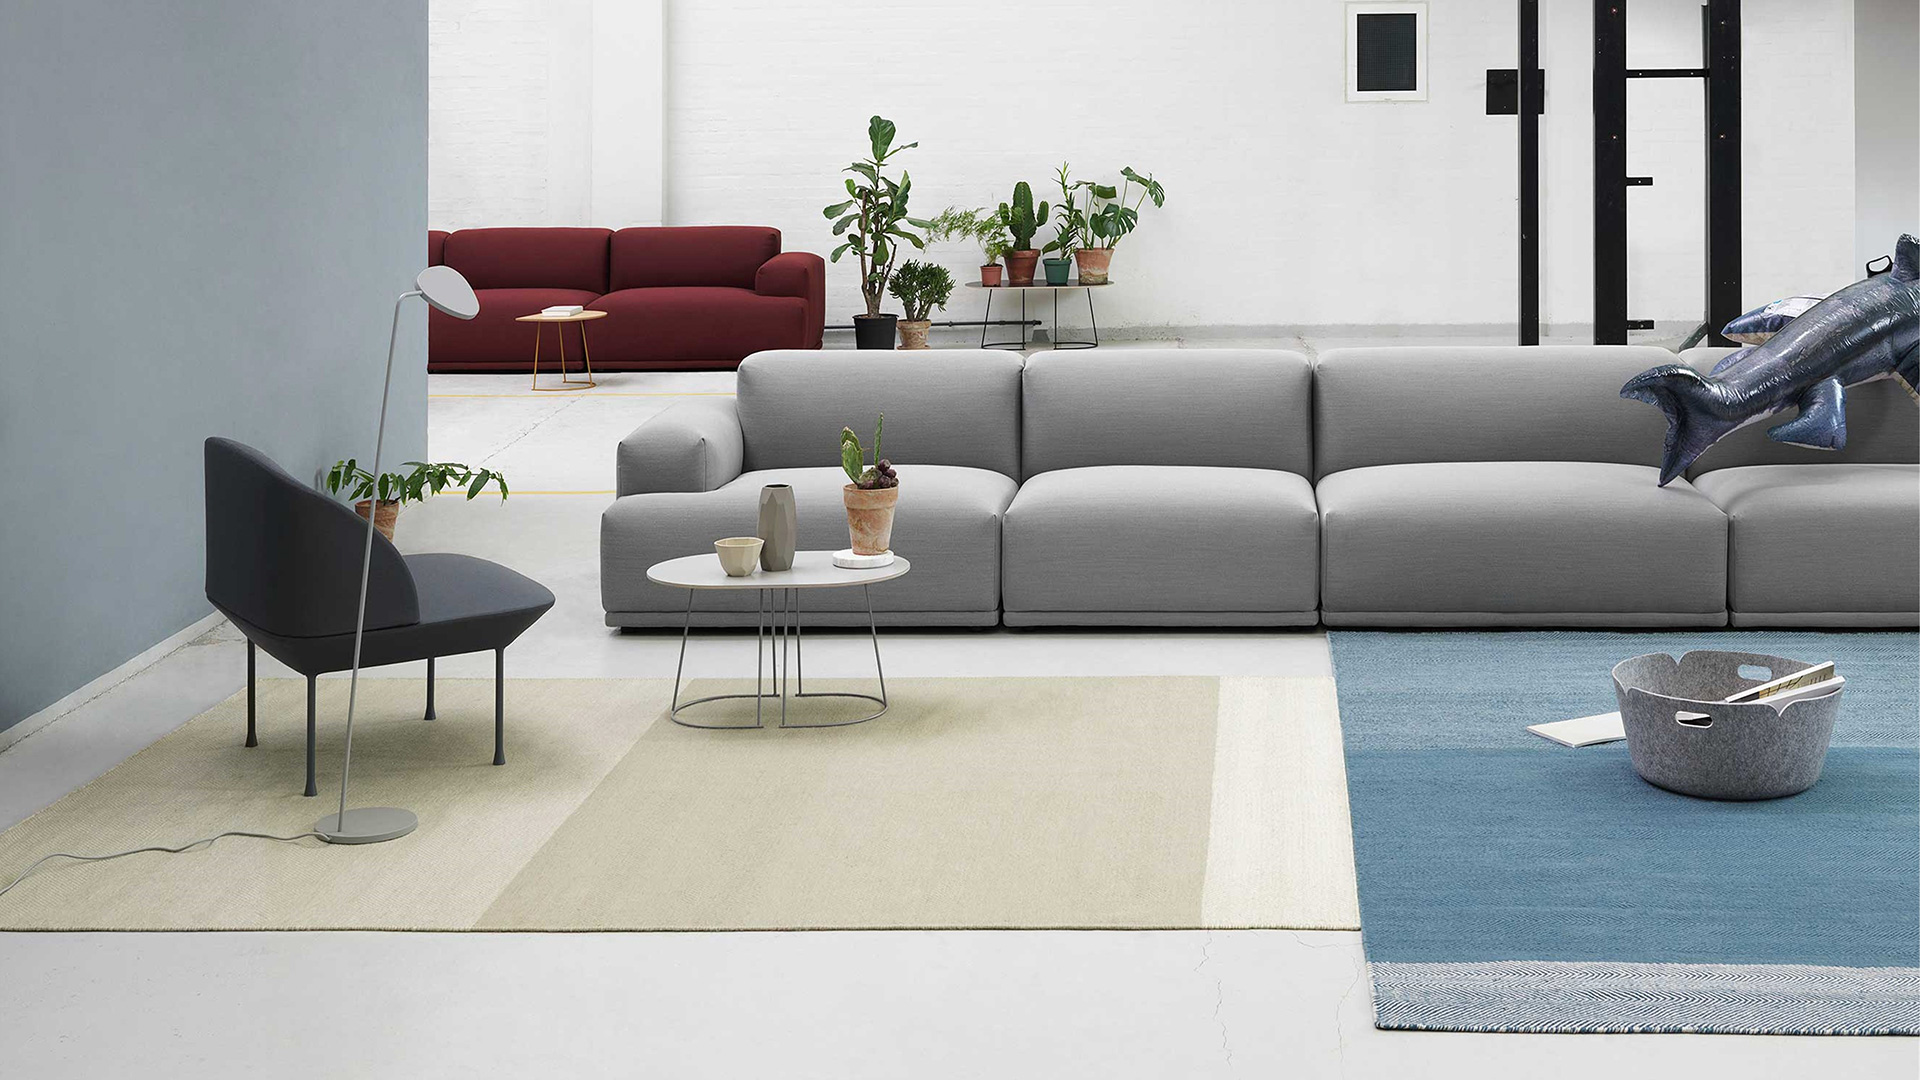 Connect Modular Sofa, 4 Seater, Lifestyle